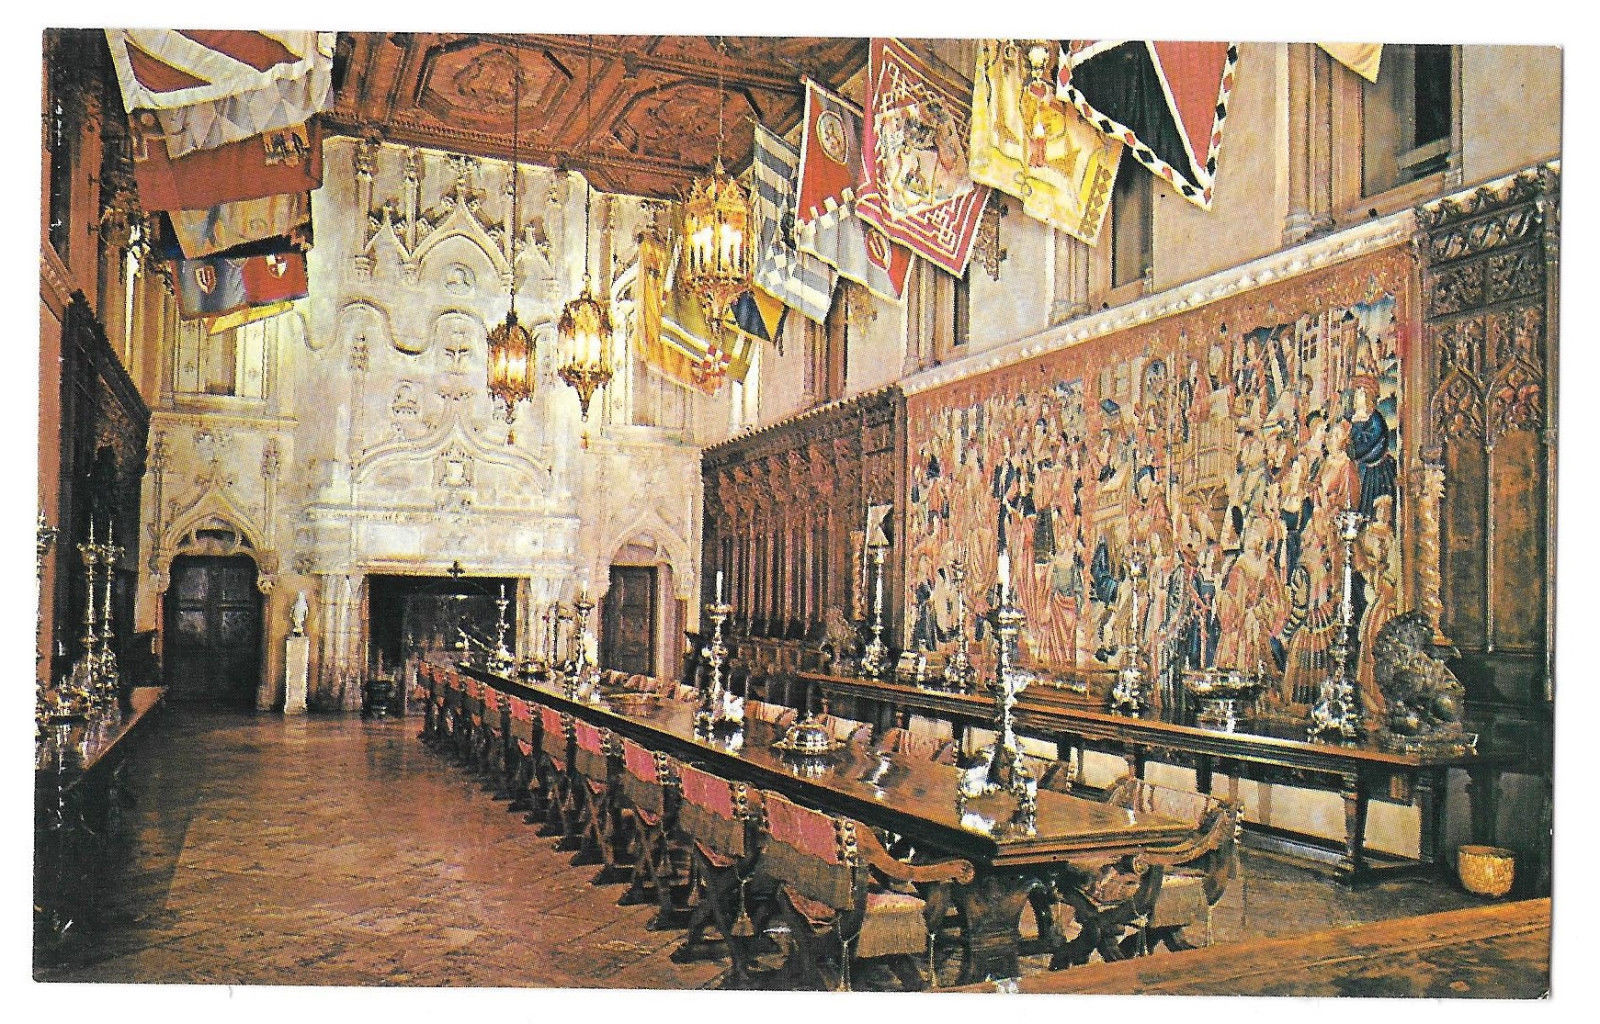 CA San Simeon Heart Castle Mansion Refectory La Casa Grande Vtg Postcard